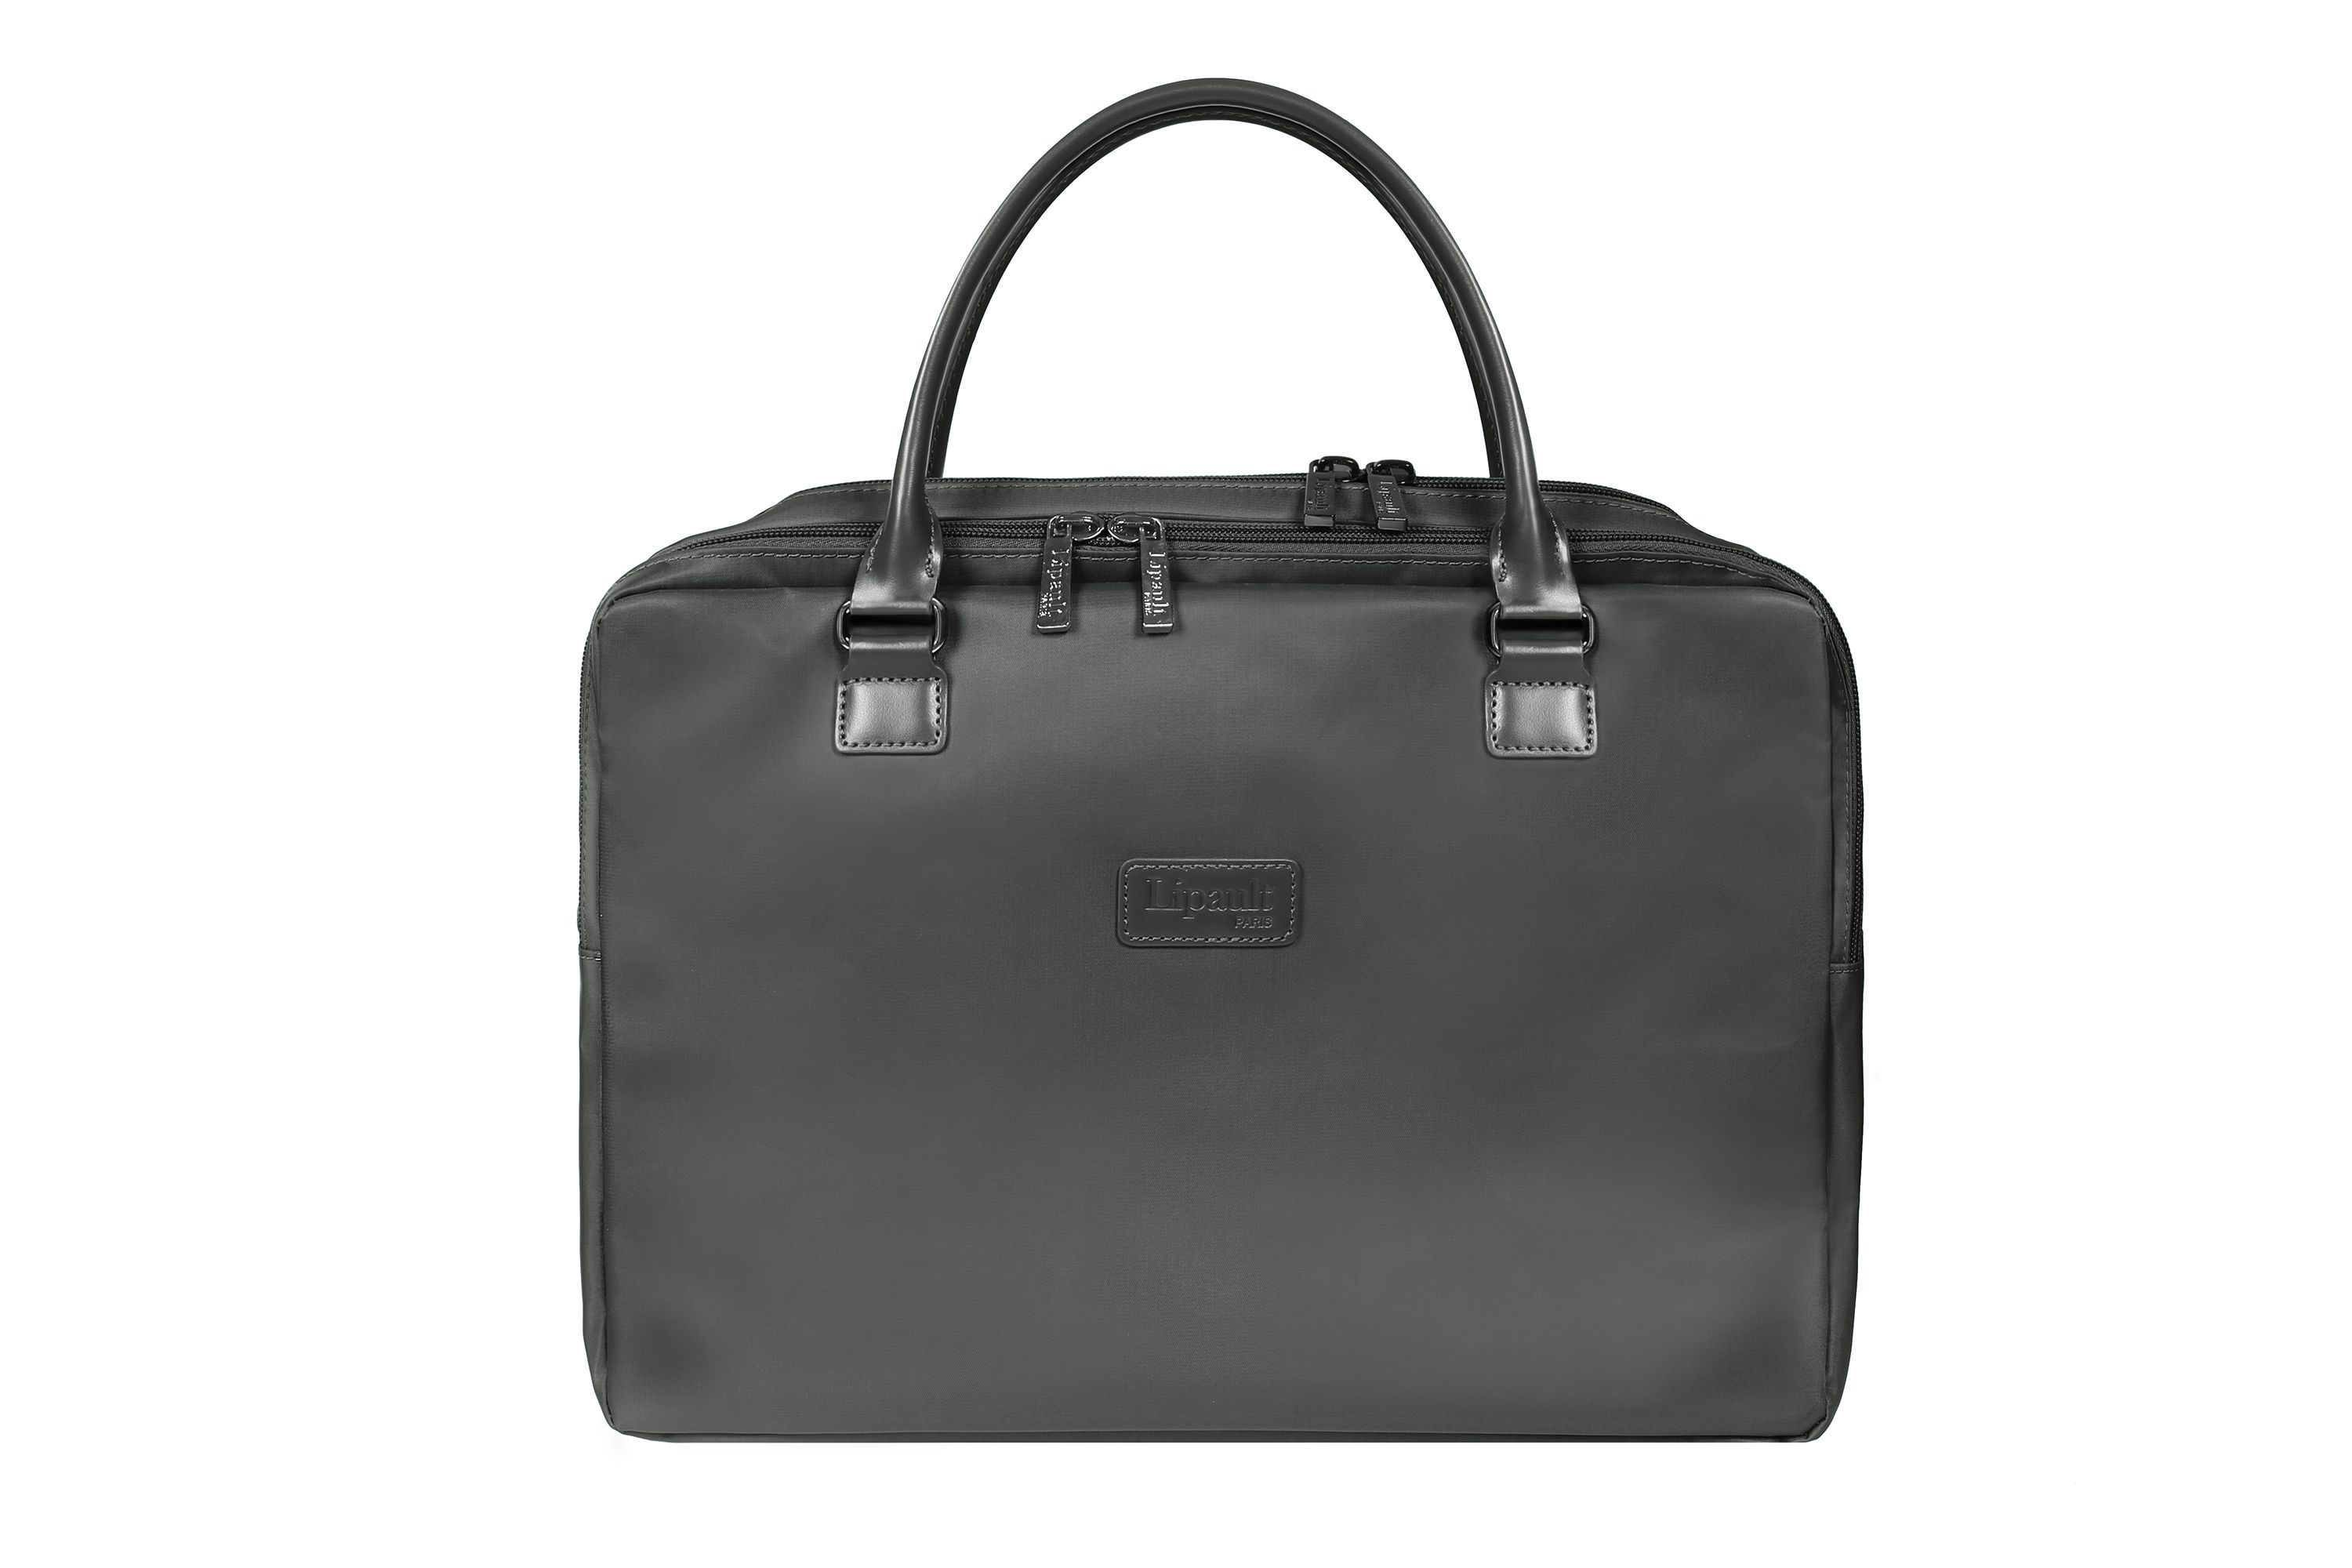 Lipault Lady Plume Anthracite Grey Laptop Bag 15.6 inch, Grey